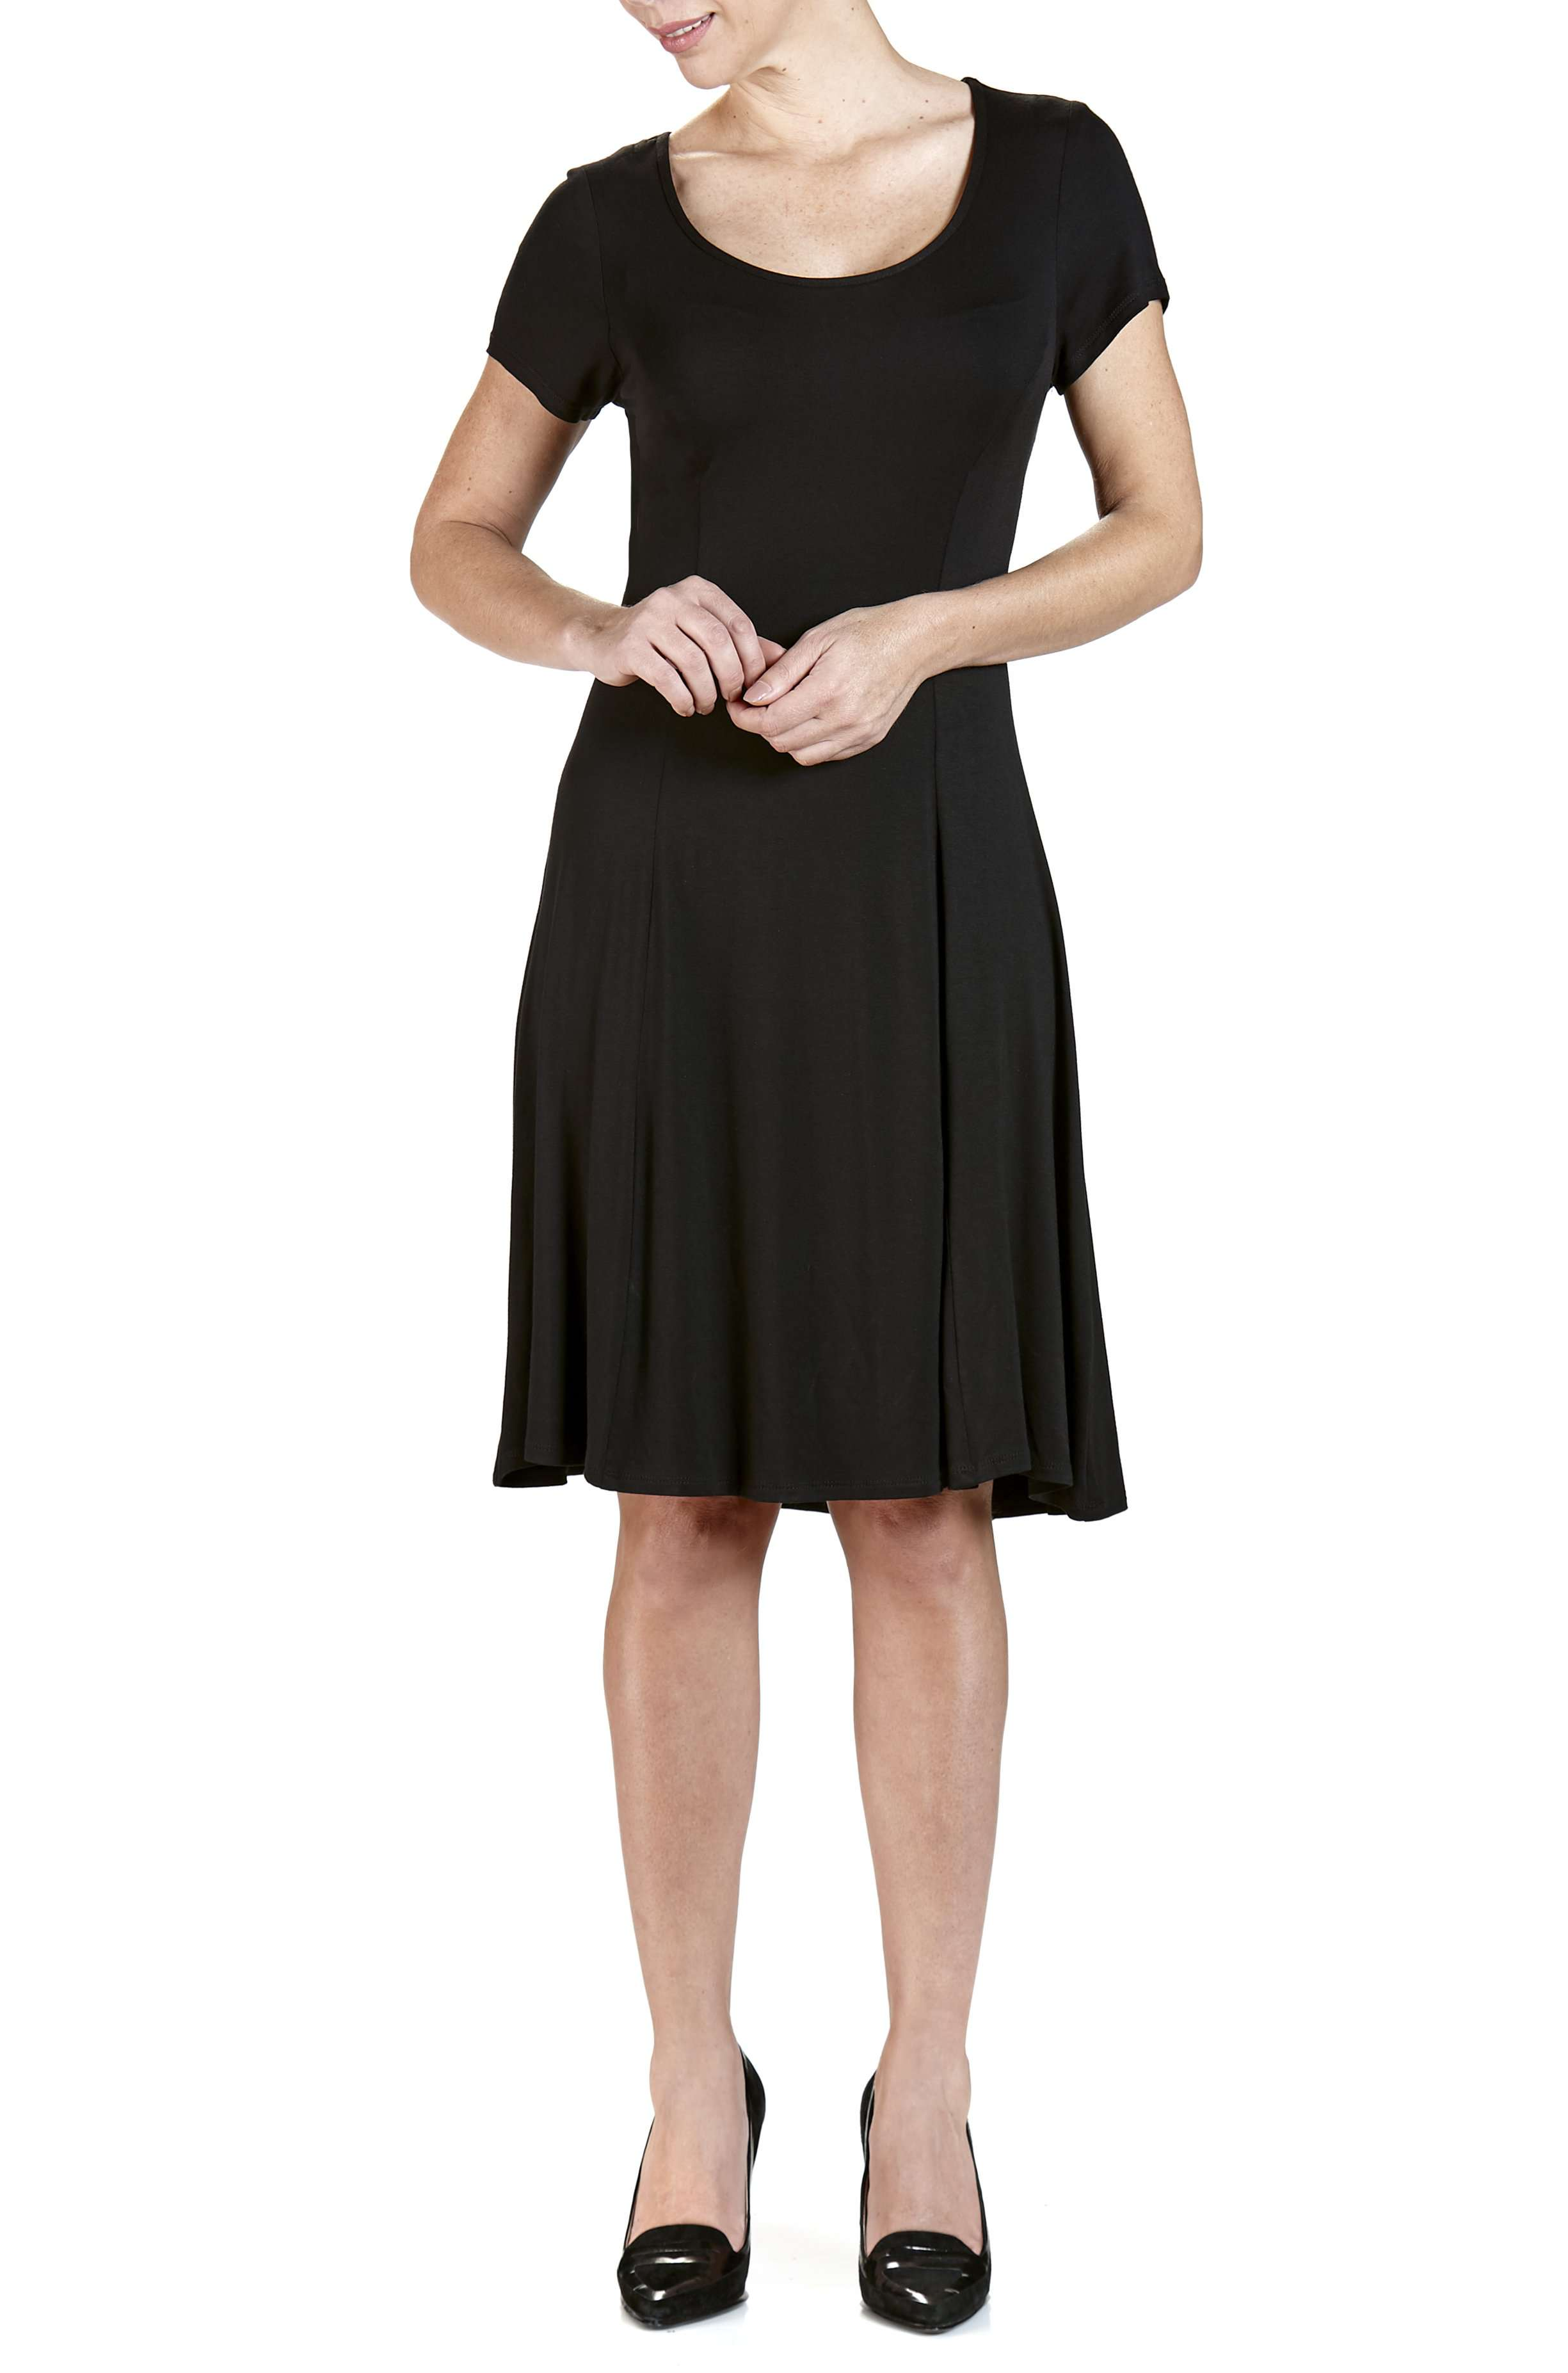 Dress Black Fit and Flare Slimming Effect-Quality and Comfort Made In Canada - Yvonne Marie